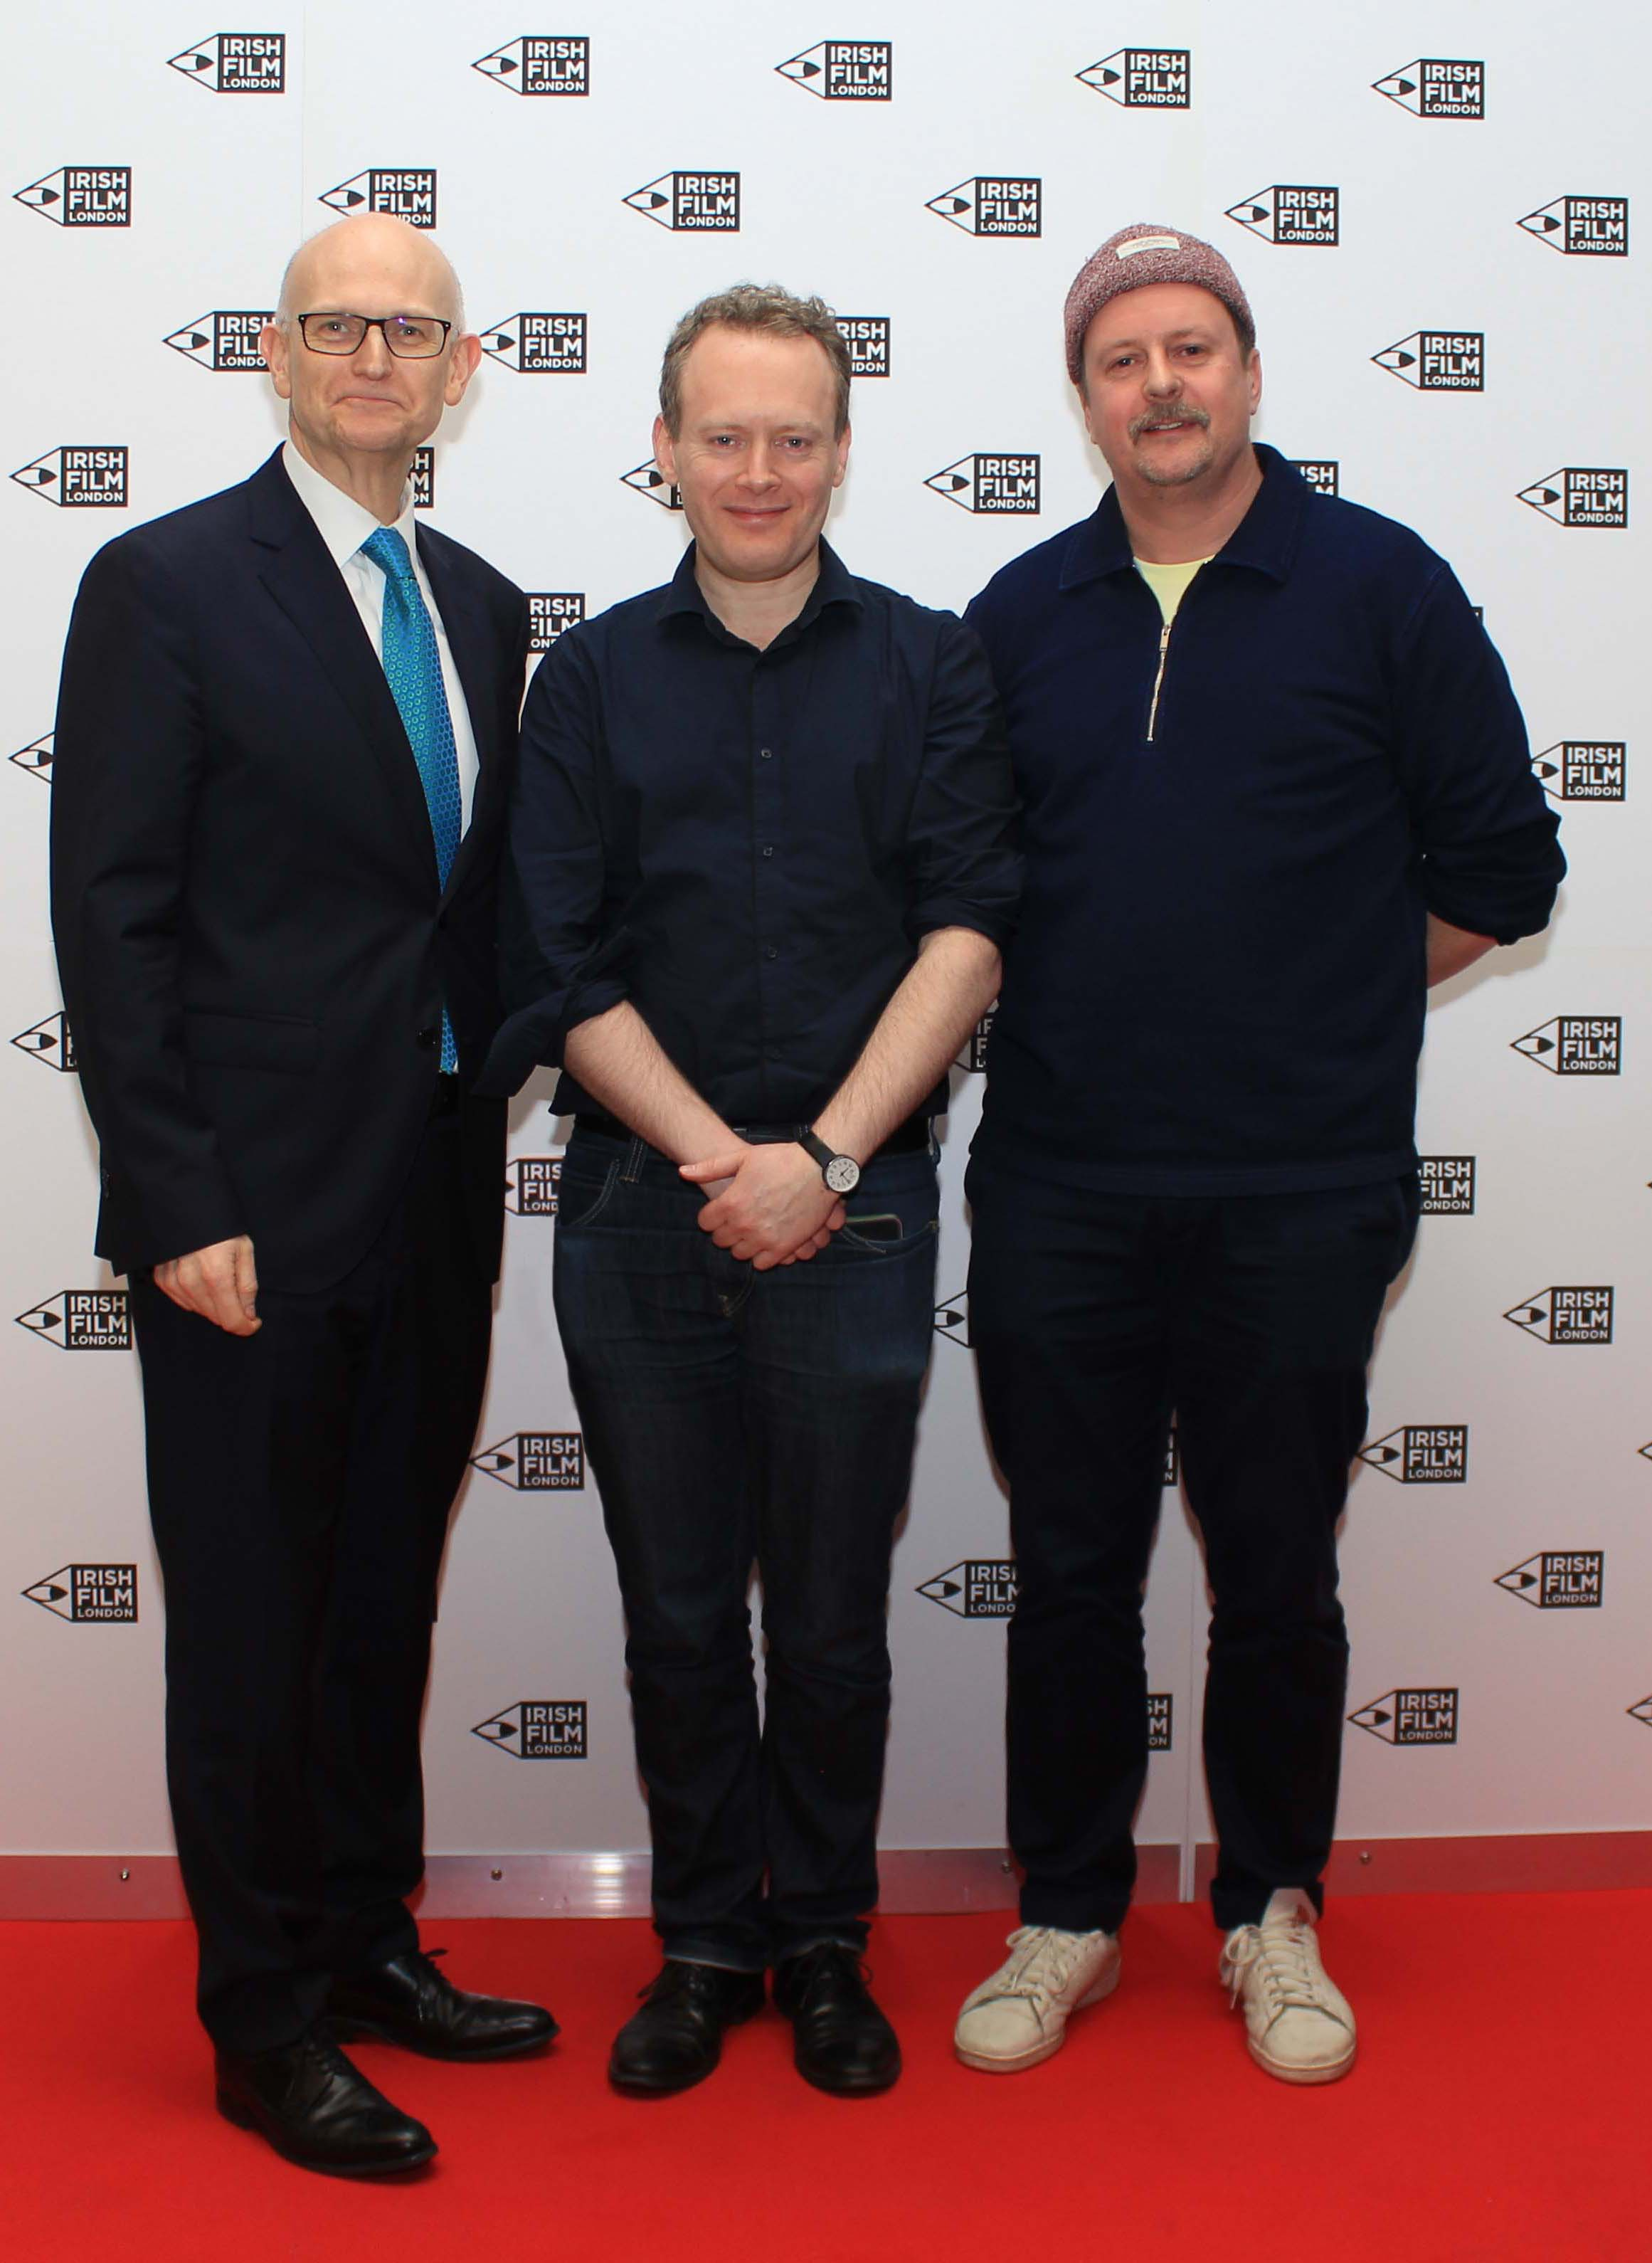 Irish Film London - Mark McNulty, Matthew Todd and John Butler at the St. Patrick's Film Festival London 2019